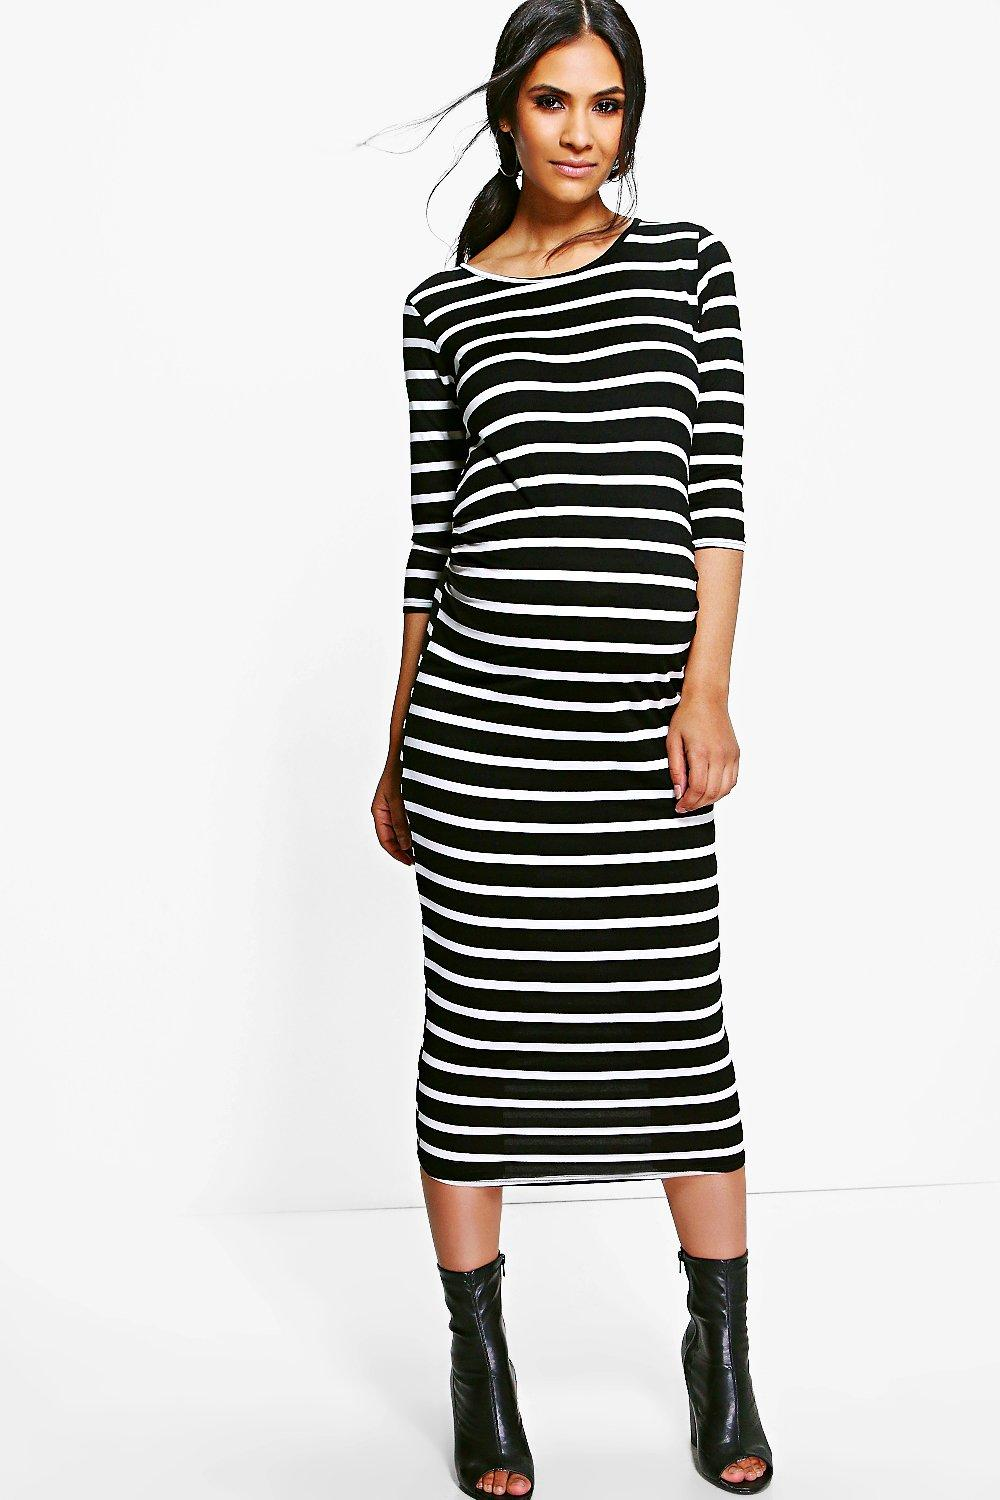 Maternity matilda striped long sleeve midi dress boohoo maternity matilda striped long sleeve midi dress hover to zoom ombrellifo Image collections